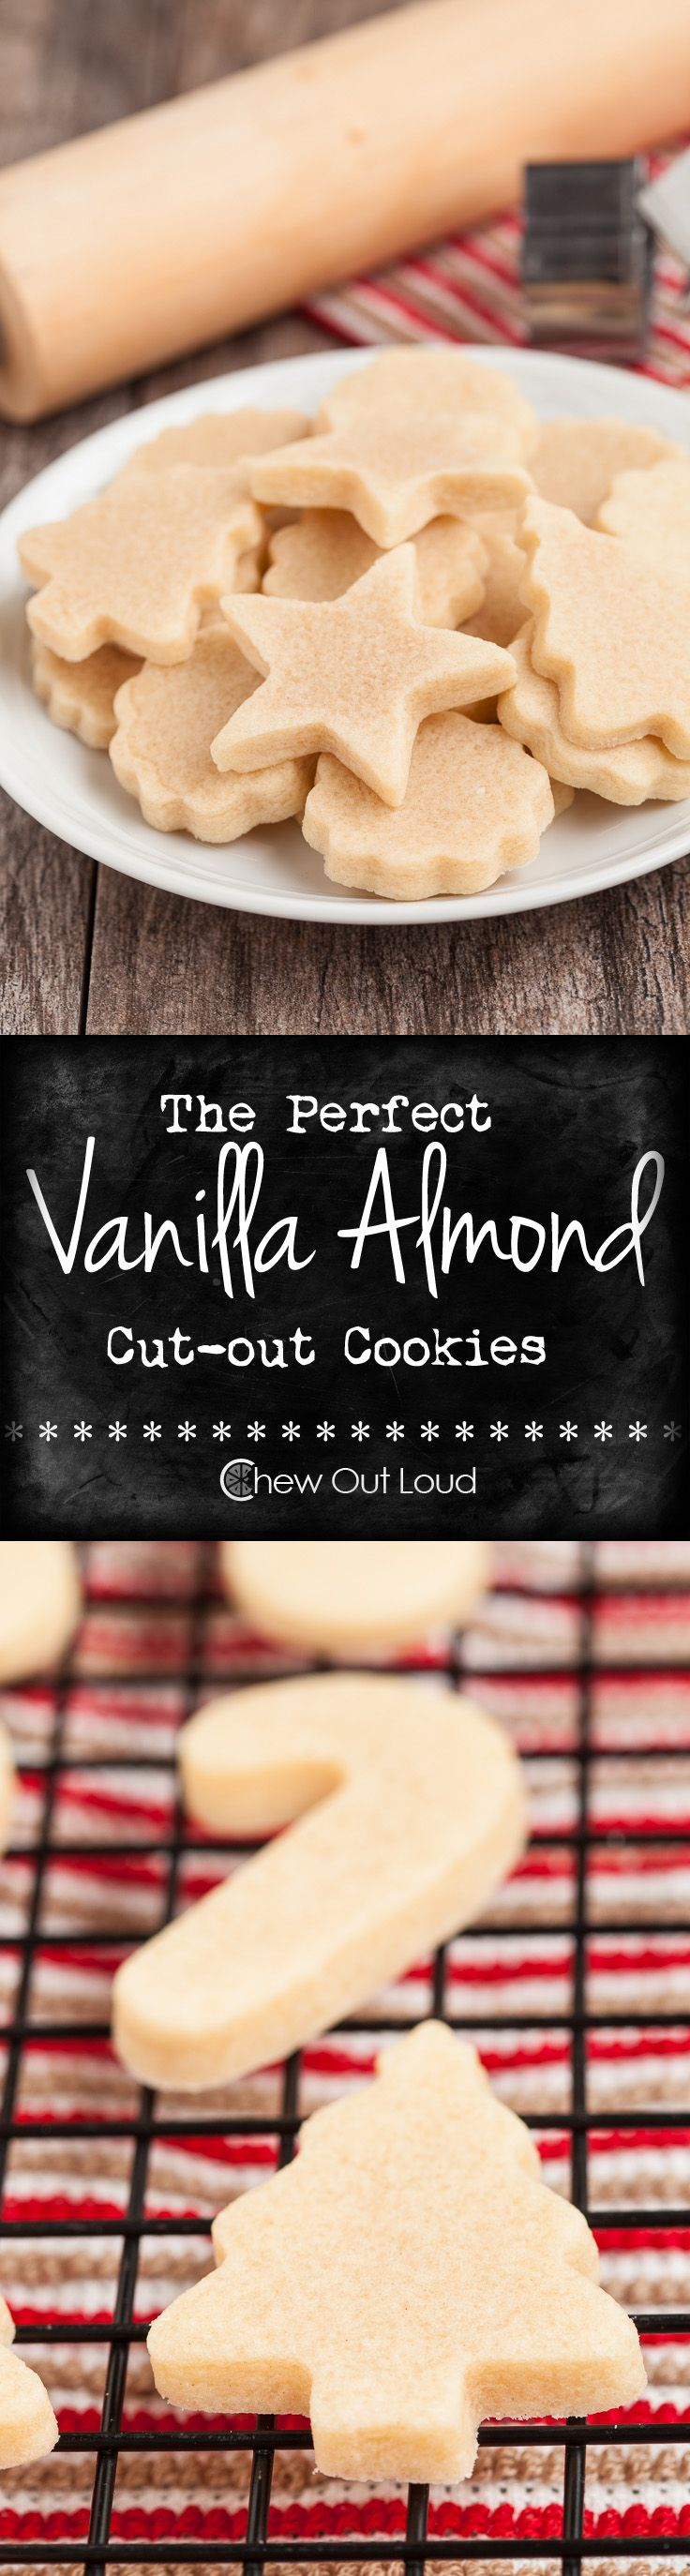 Perfect Vanilla Almond Cut Out Cookies